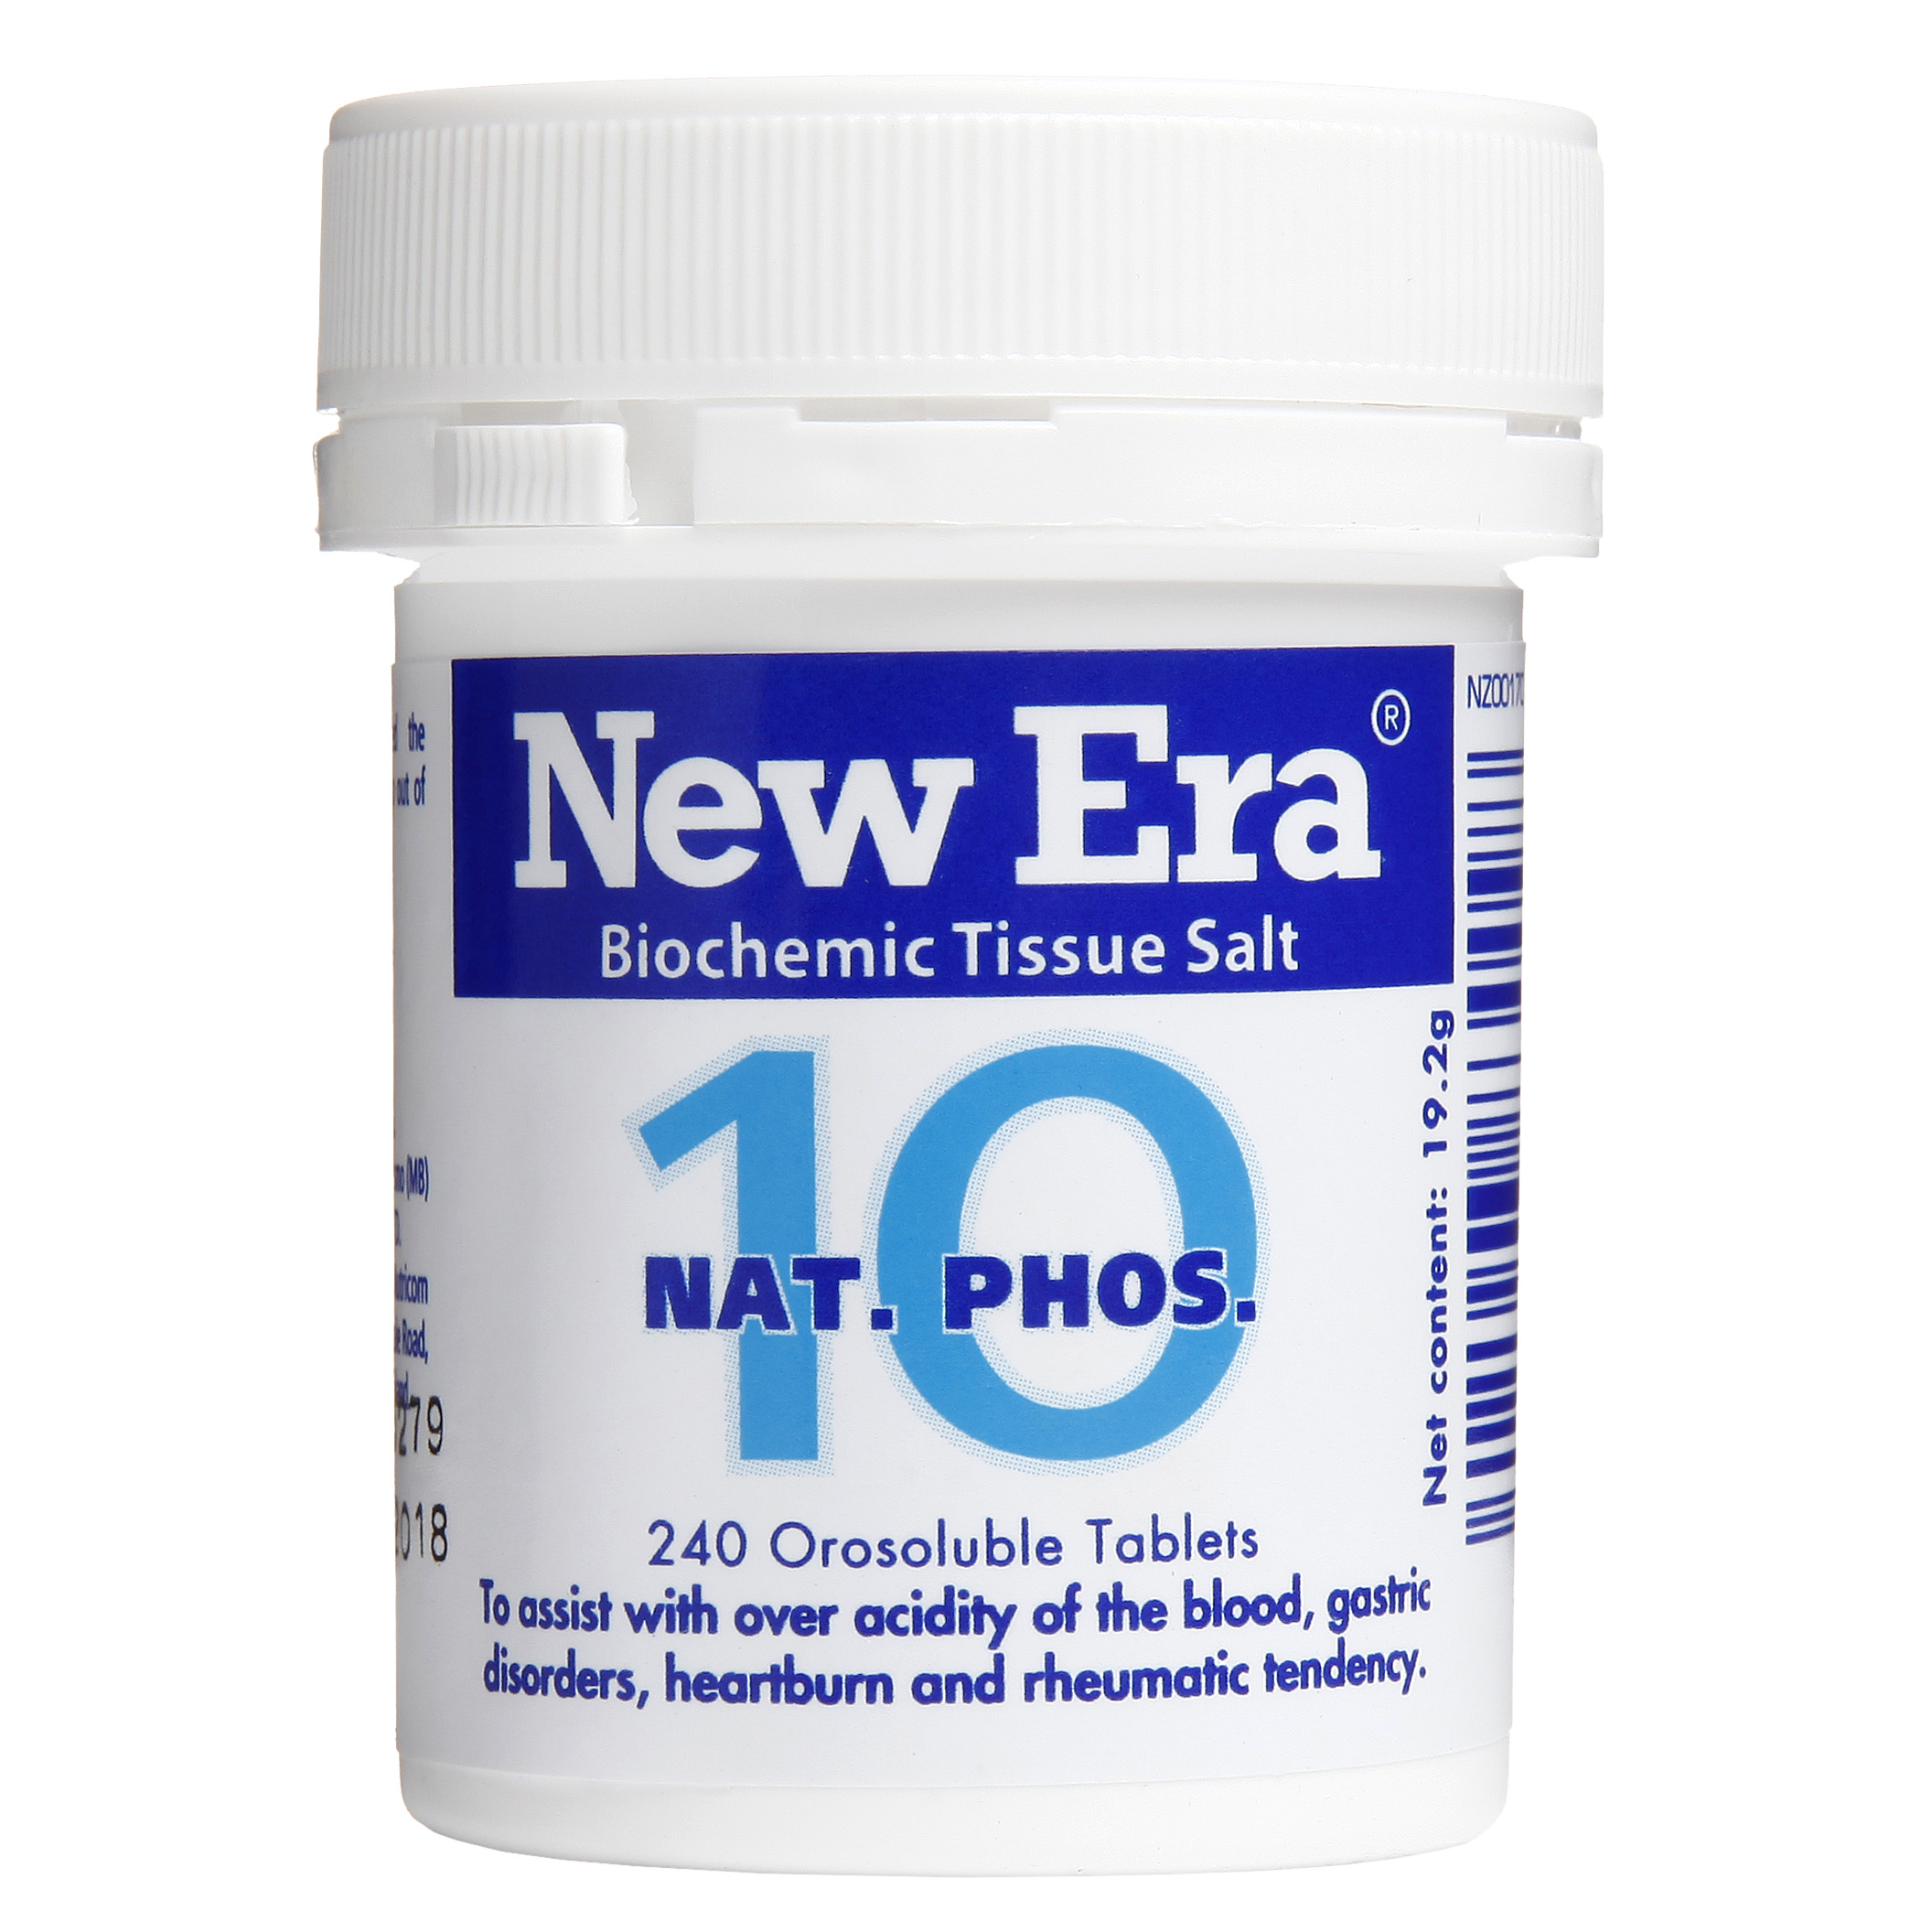 New Era No 10 Nat Phos Mineral Cell Salt